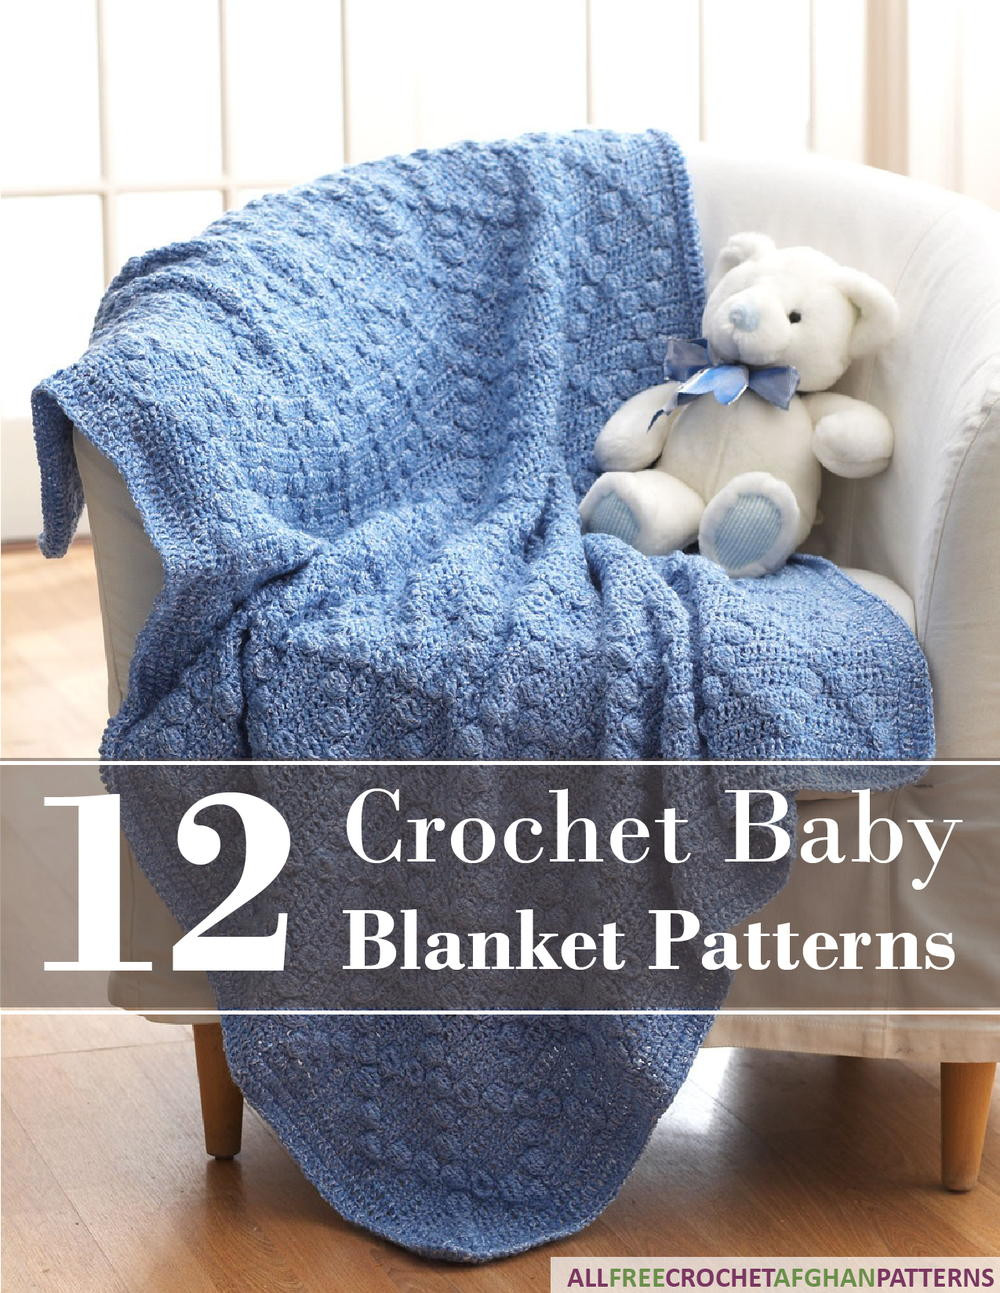 Baby Boy Crochet Blanket Patterns Elegant 12 Crochet Baby Blanket Patterns Free Ebook Of Baby Boy Crochet Blanket Patterns Lovely My Crochet Part 395